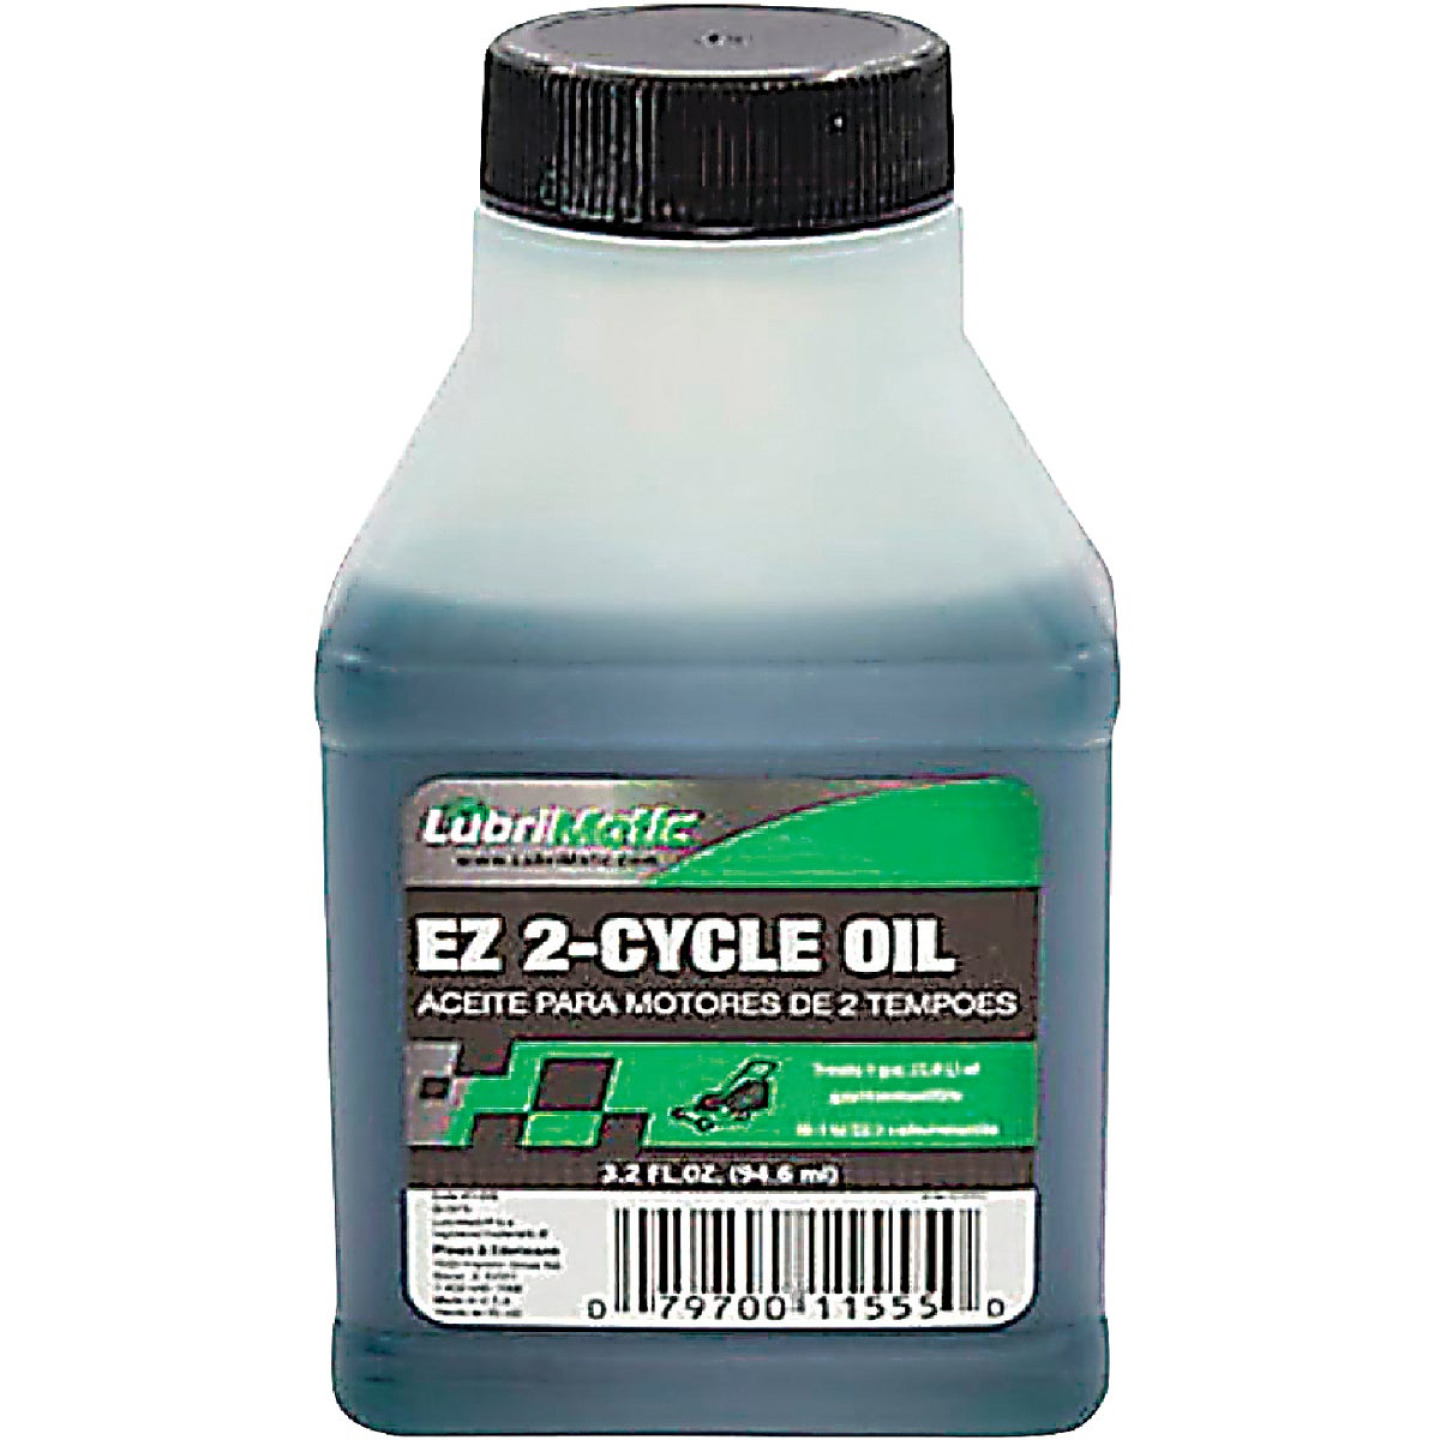 Lubrimatic E-Z 3.2 Oz. 2-Cycle Motor Oil Image 1